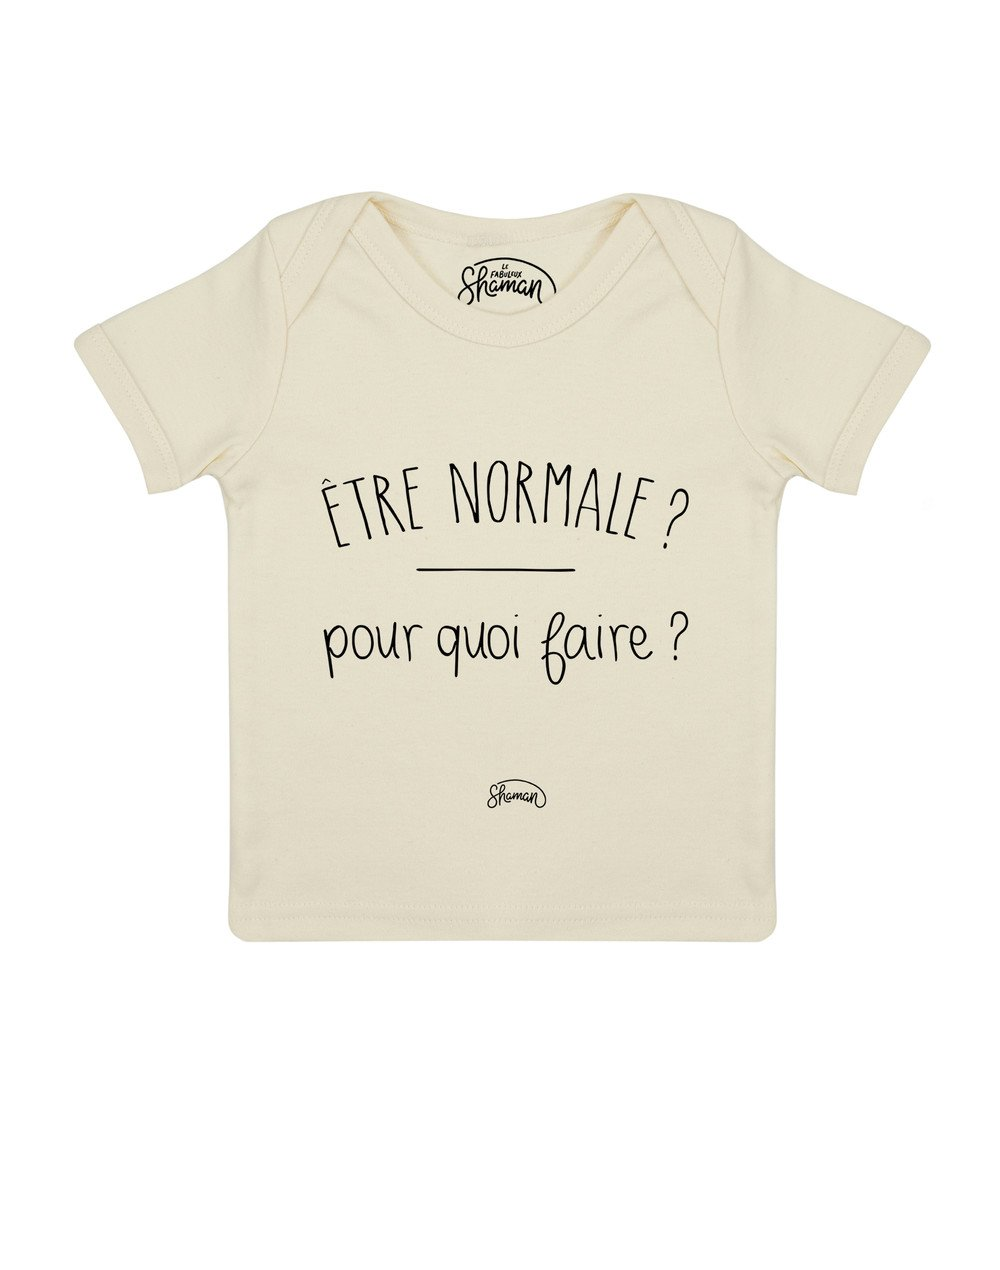 Tee shirt Normale pourquoi